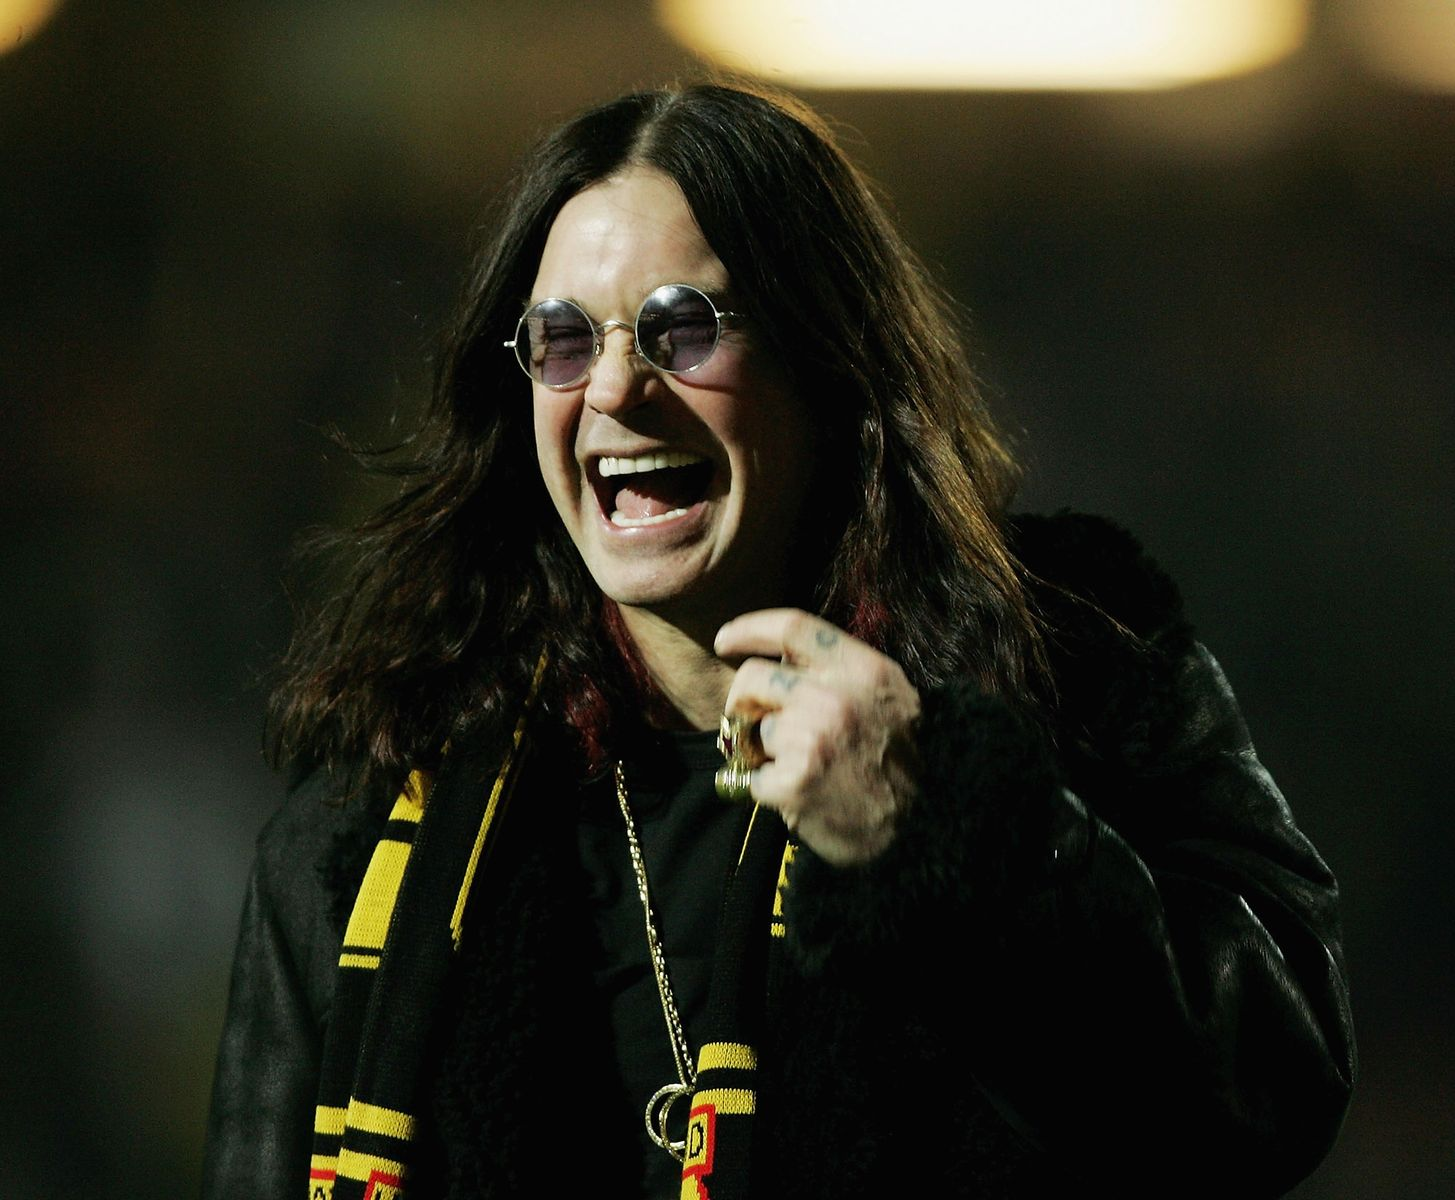 Ozzy Osbourne at the Carling Cup Quarterfinal match between Watford and Portsmouth on November 30, 2004, in Watford, England | Photo: Bryn Lennon/Getty Images